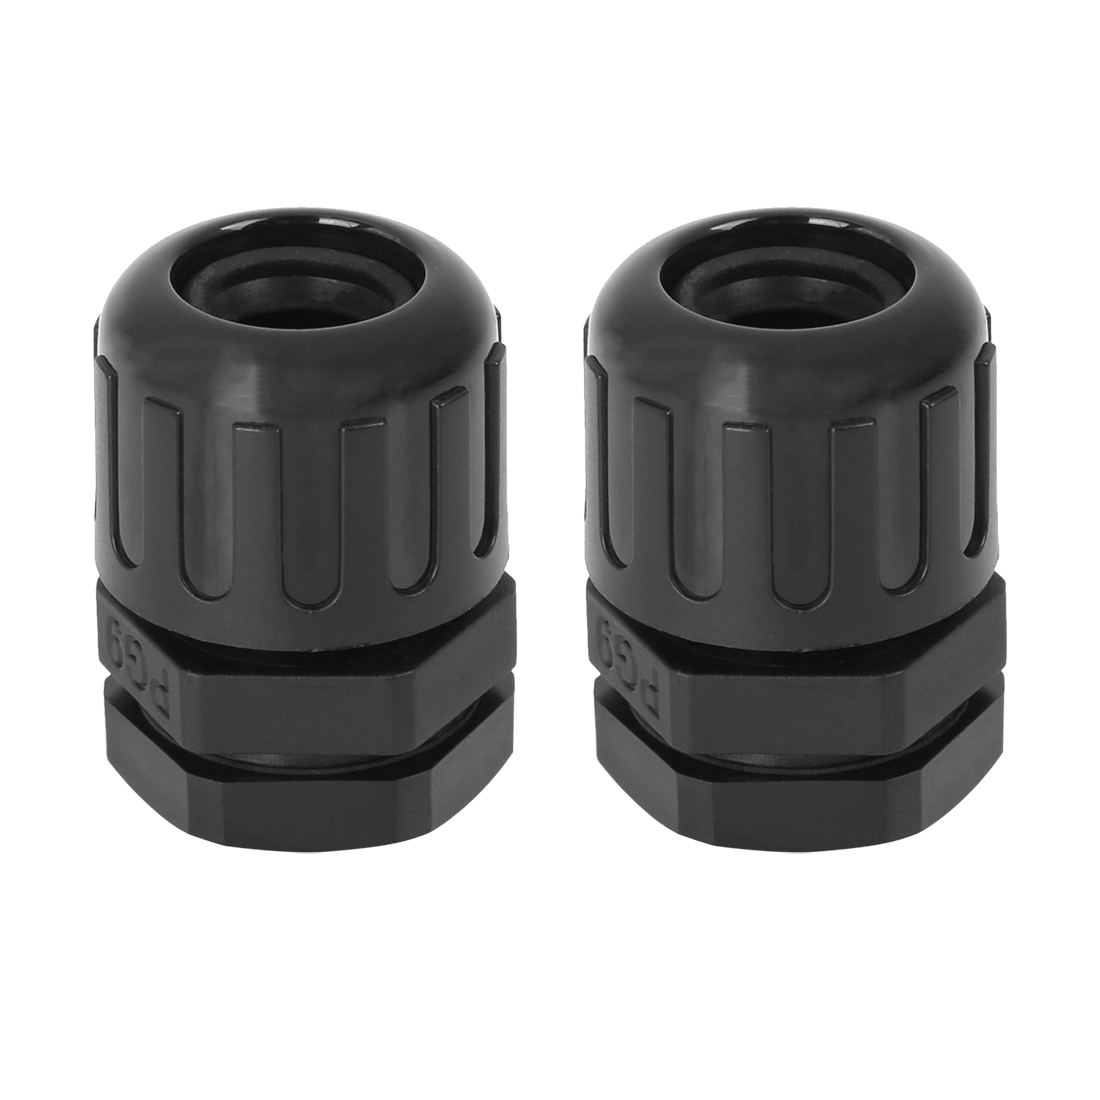 Cable Gland Nylon Plastic Tube Connectors with Lock Nut and Gaskets PG9 2pcs